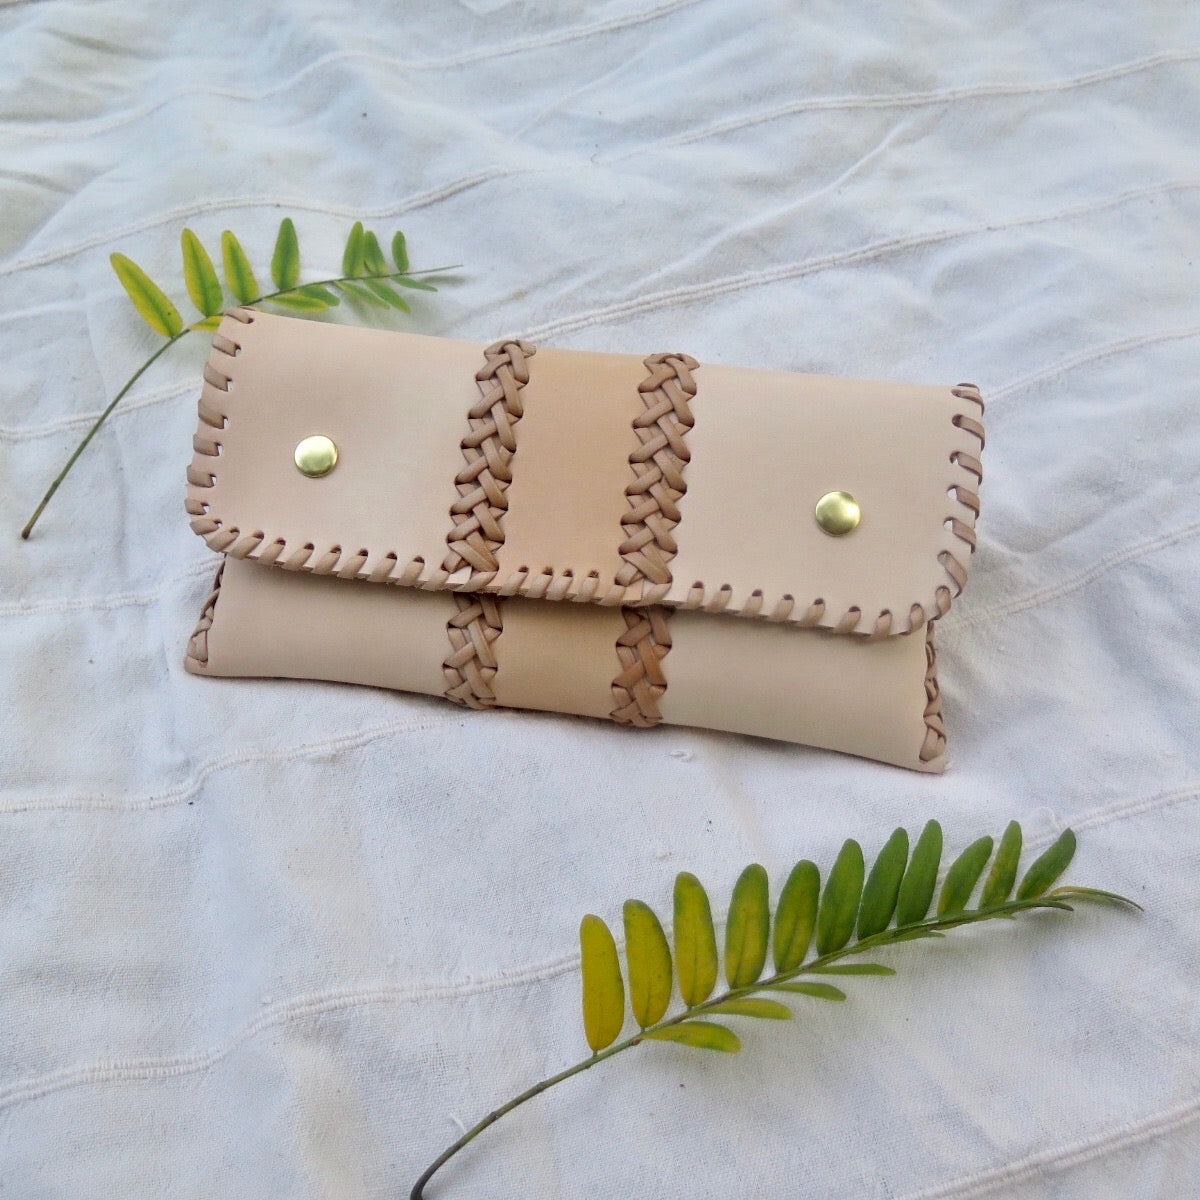 SMALL LEATHER BRAIDED CLUTCH